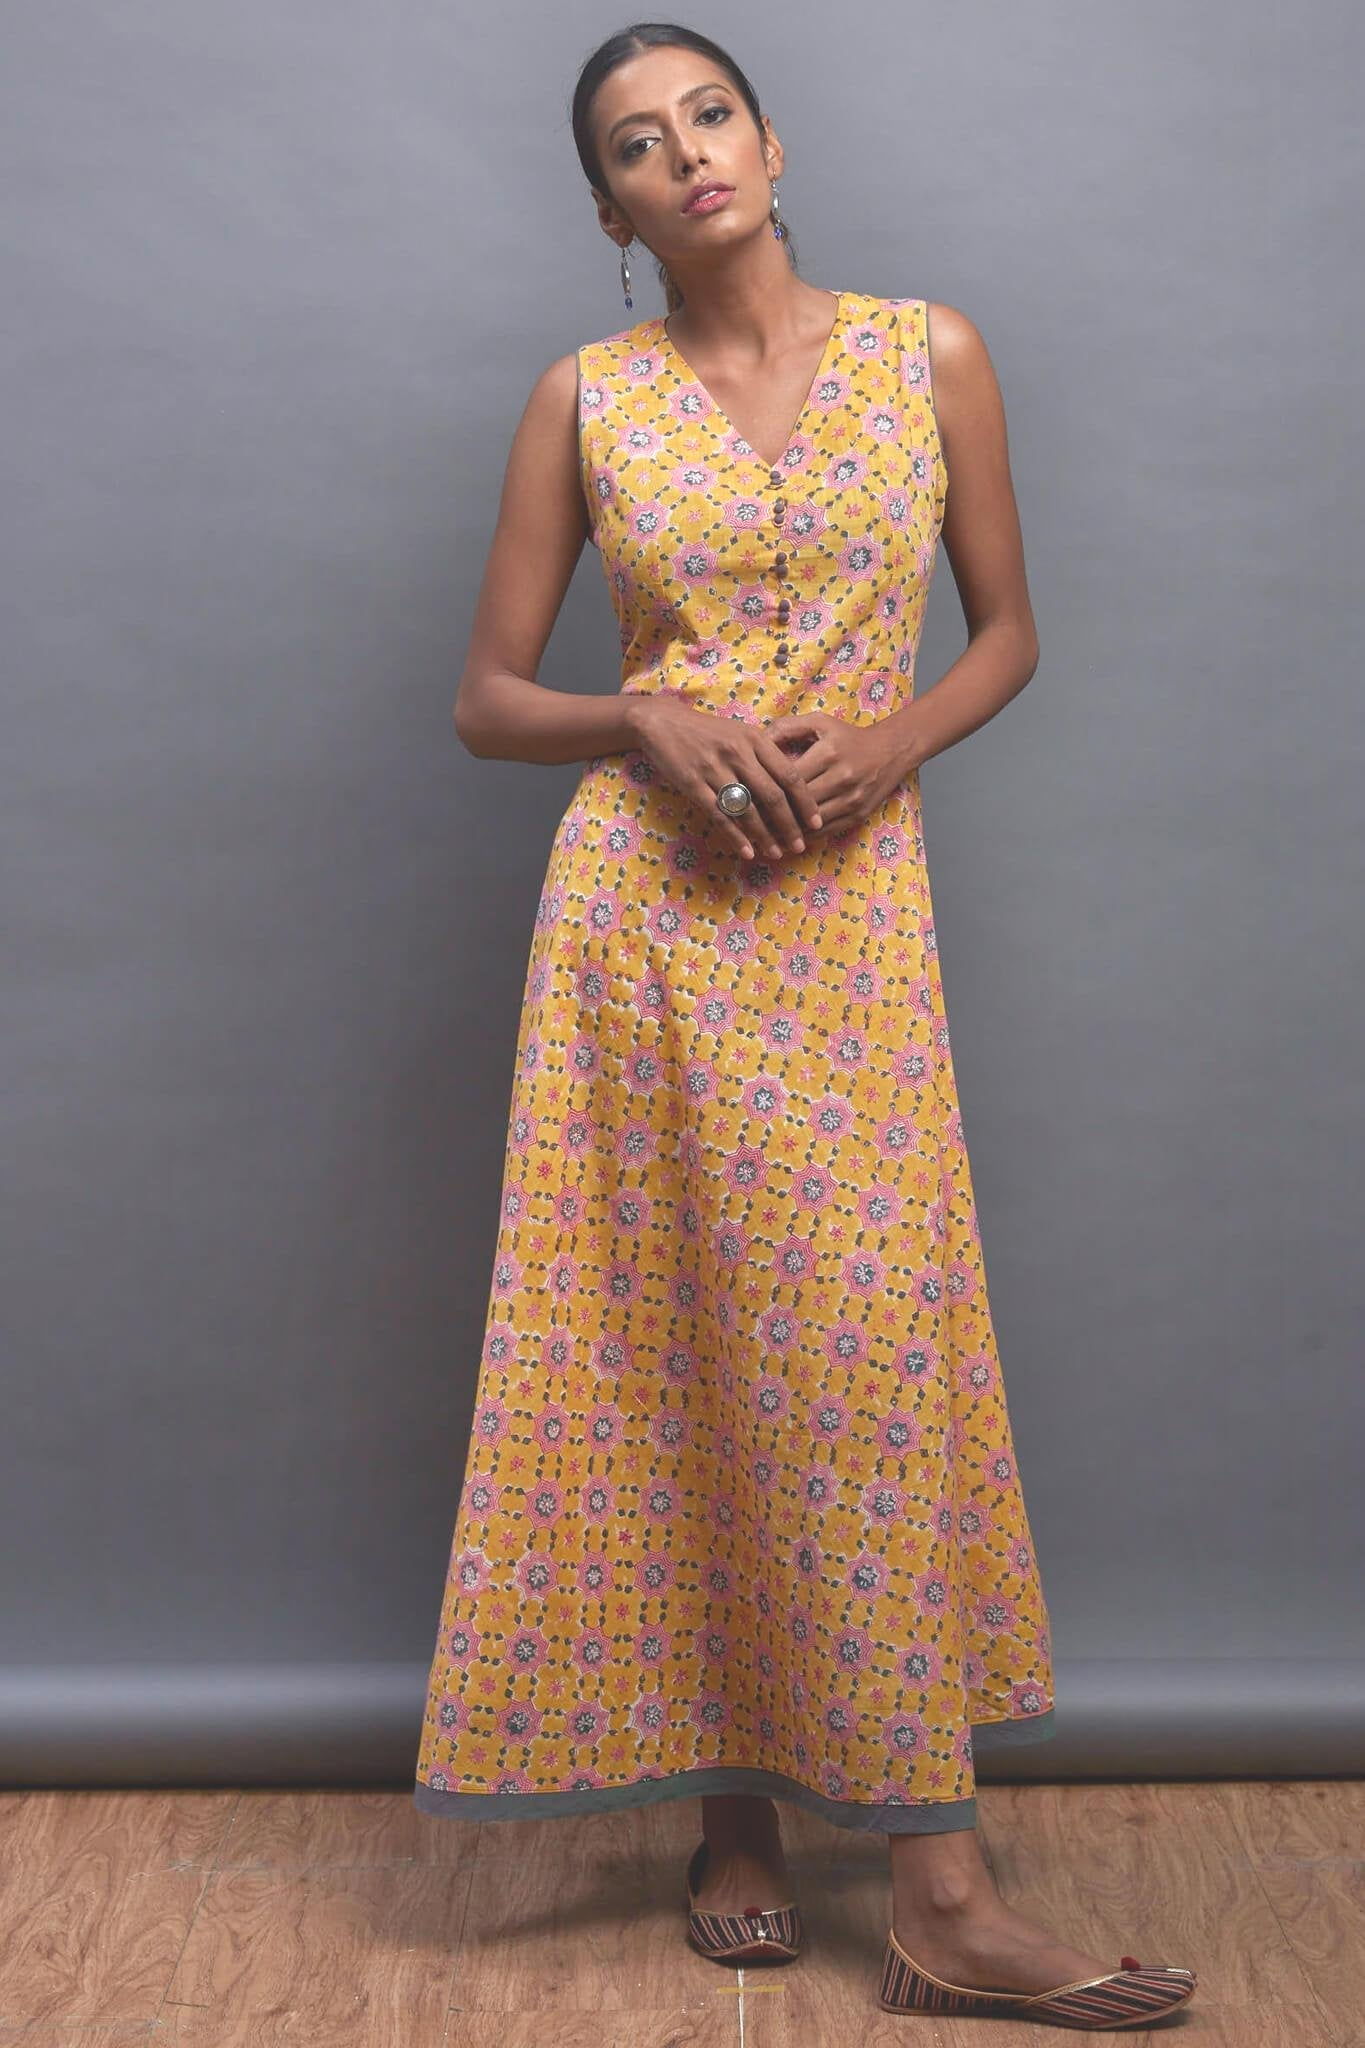 sleeveless summer dress - sunkiss & the tuberose